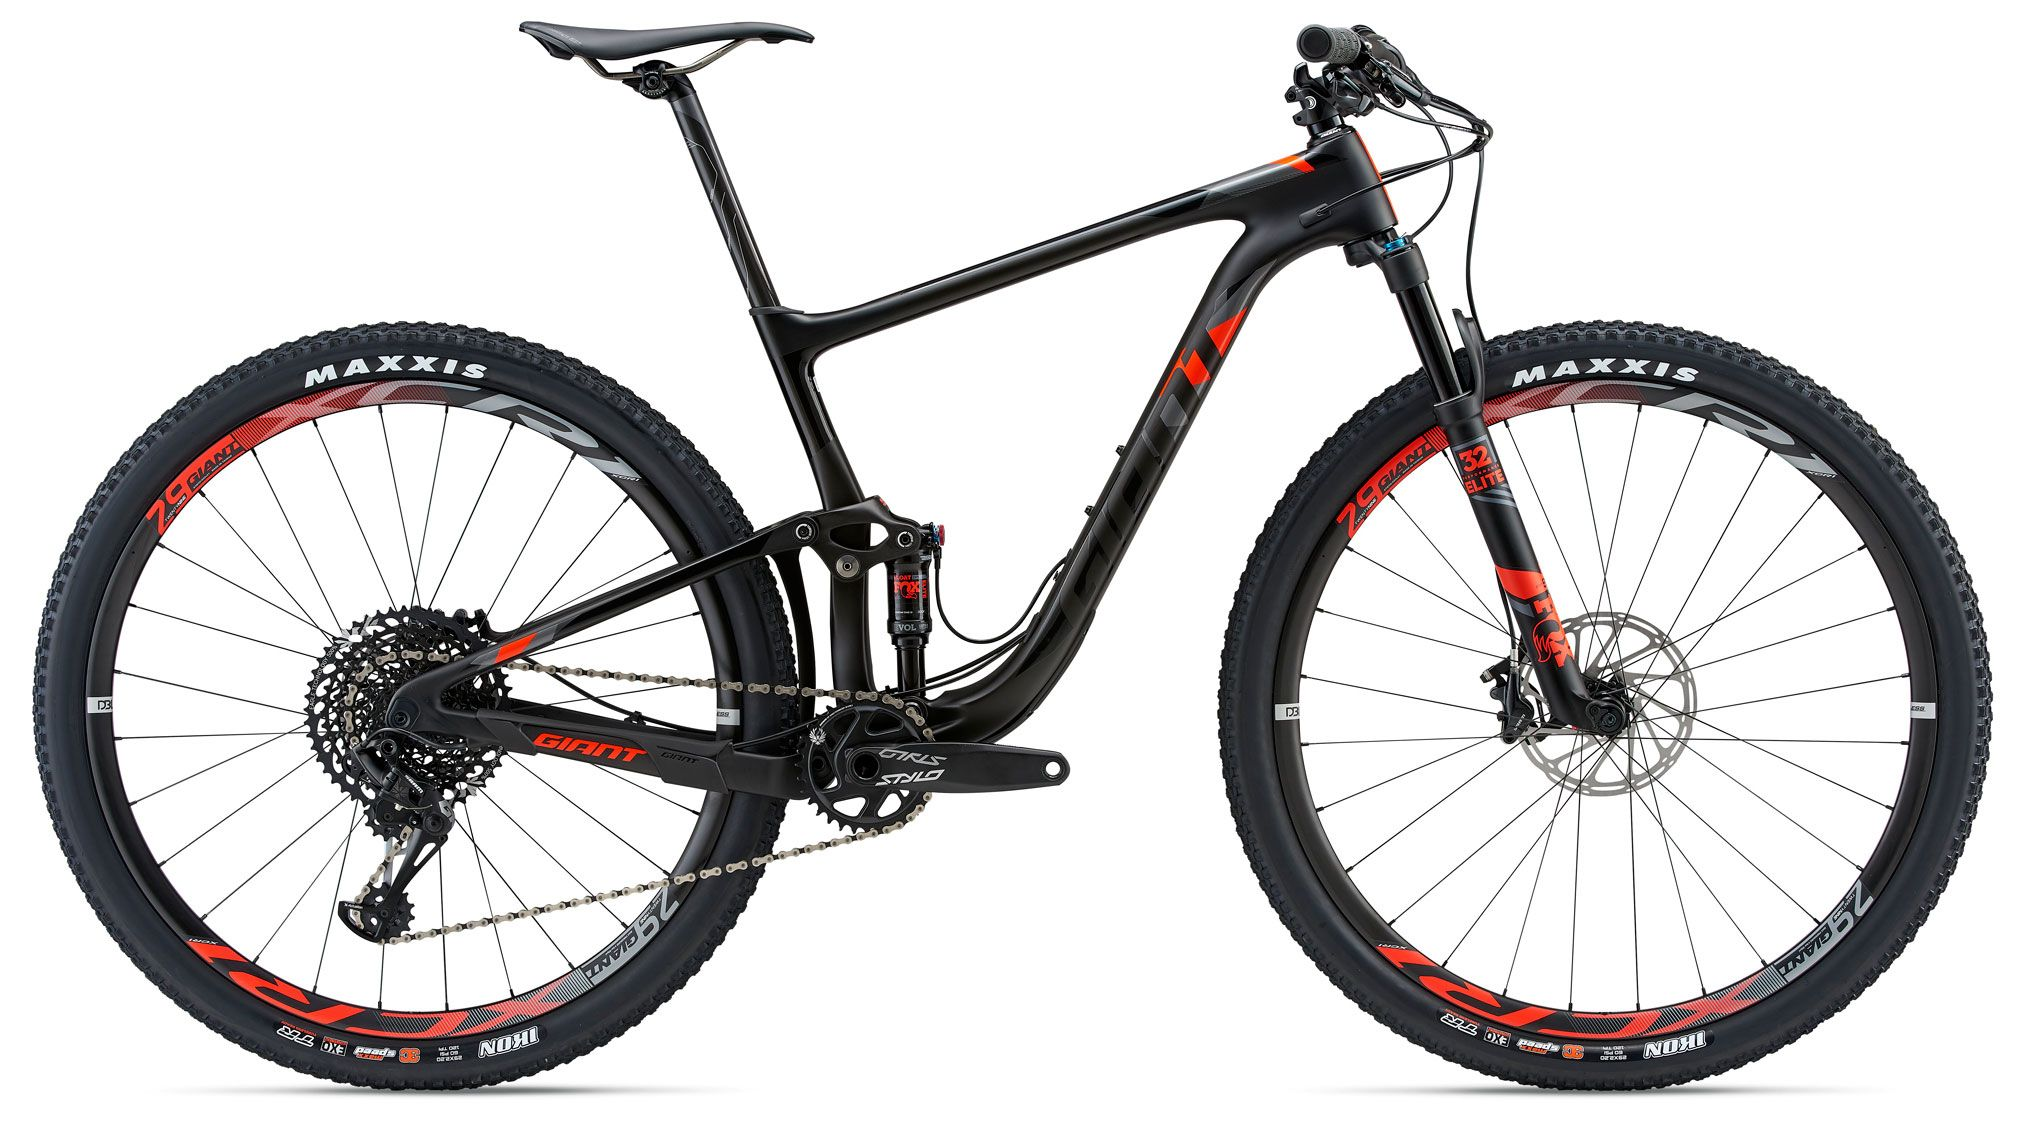 Велосипед Giant Anthem Advanced Pro 29er 1 2018 велосипед giant defy advanced pro 0 compact 2015